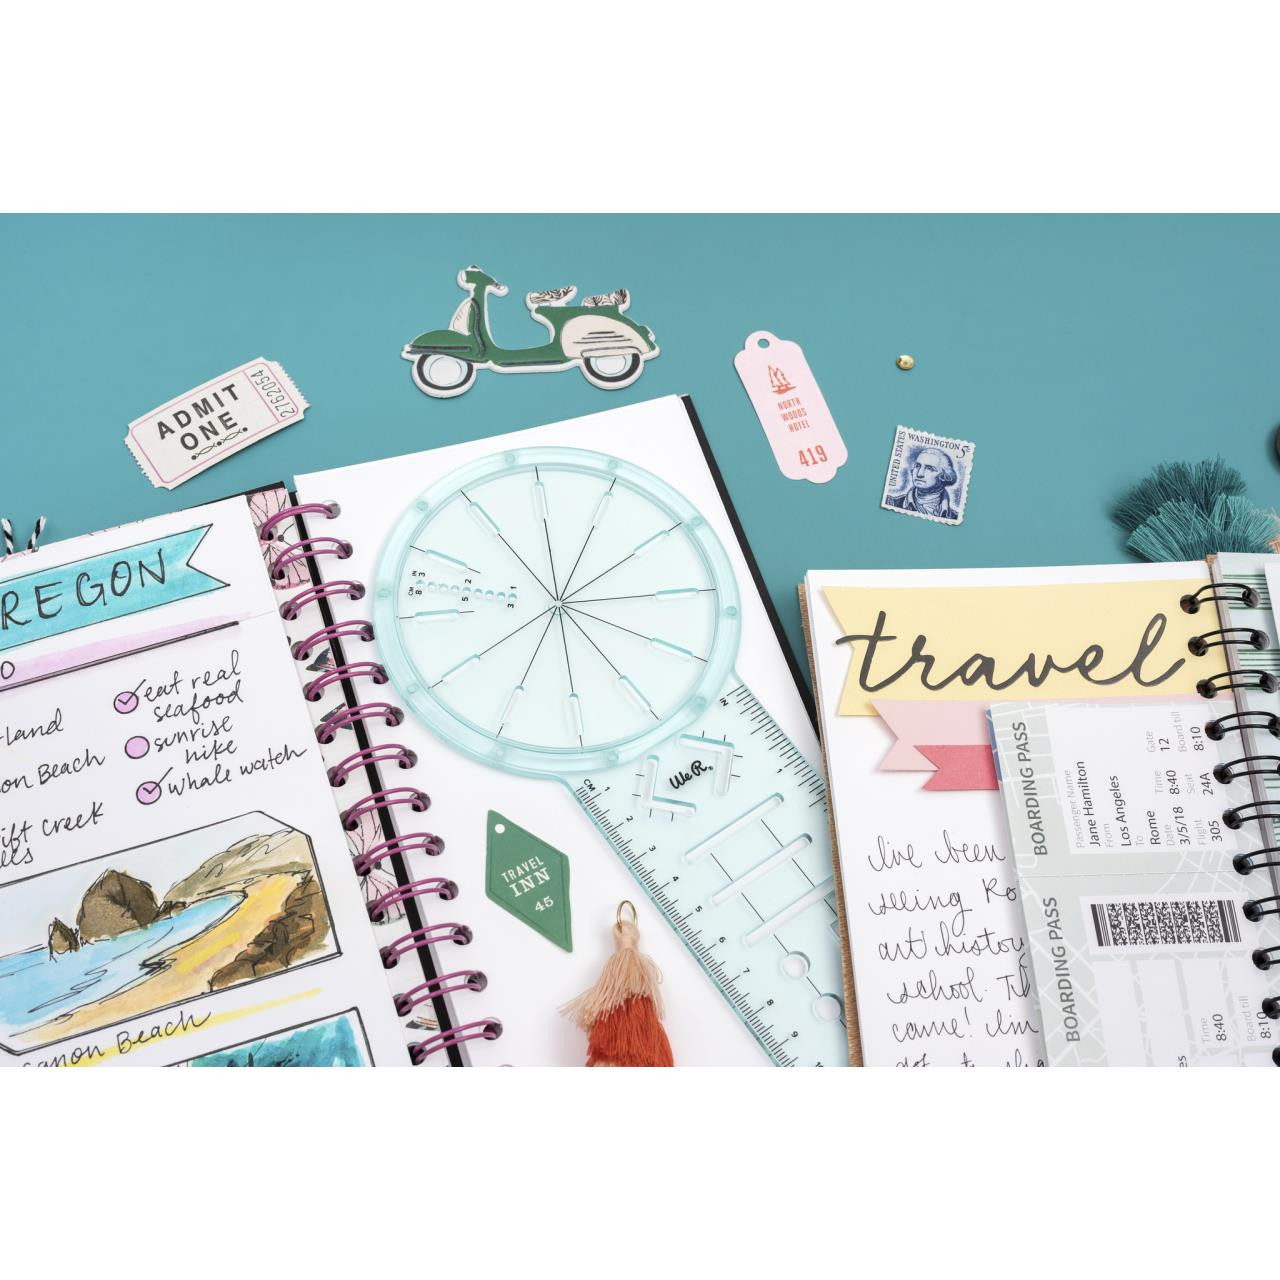 All In One Journal Tool, We R Memory Keepers - 633356620426